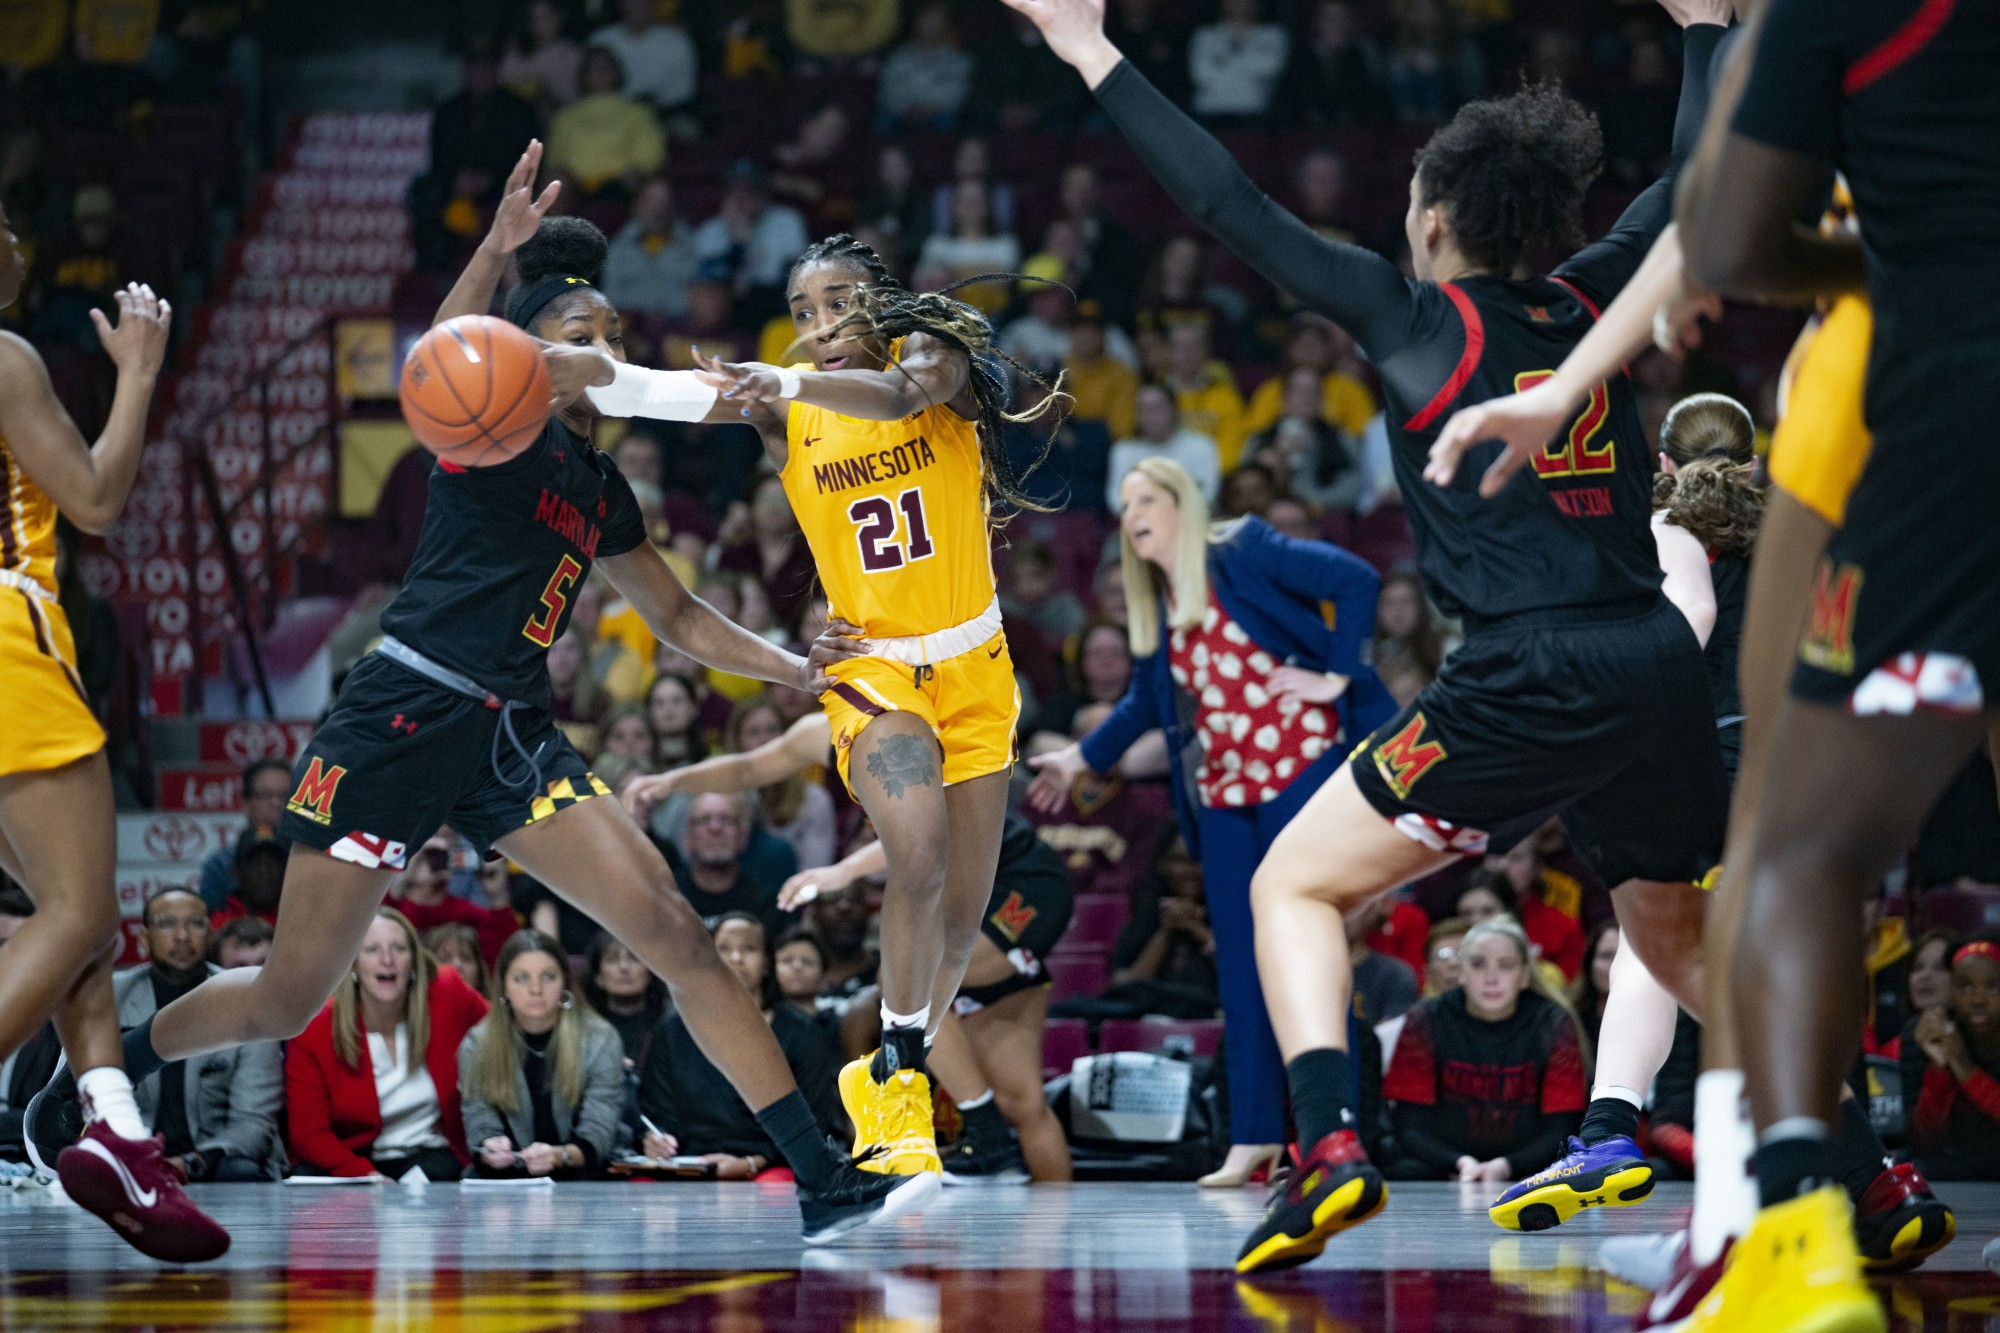 Guard Jasmine Brunson passes the ball through defenders at Williams Arena on Sunday, March 1. The Gophers fell to Maryland 99-44.